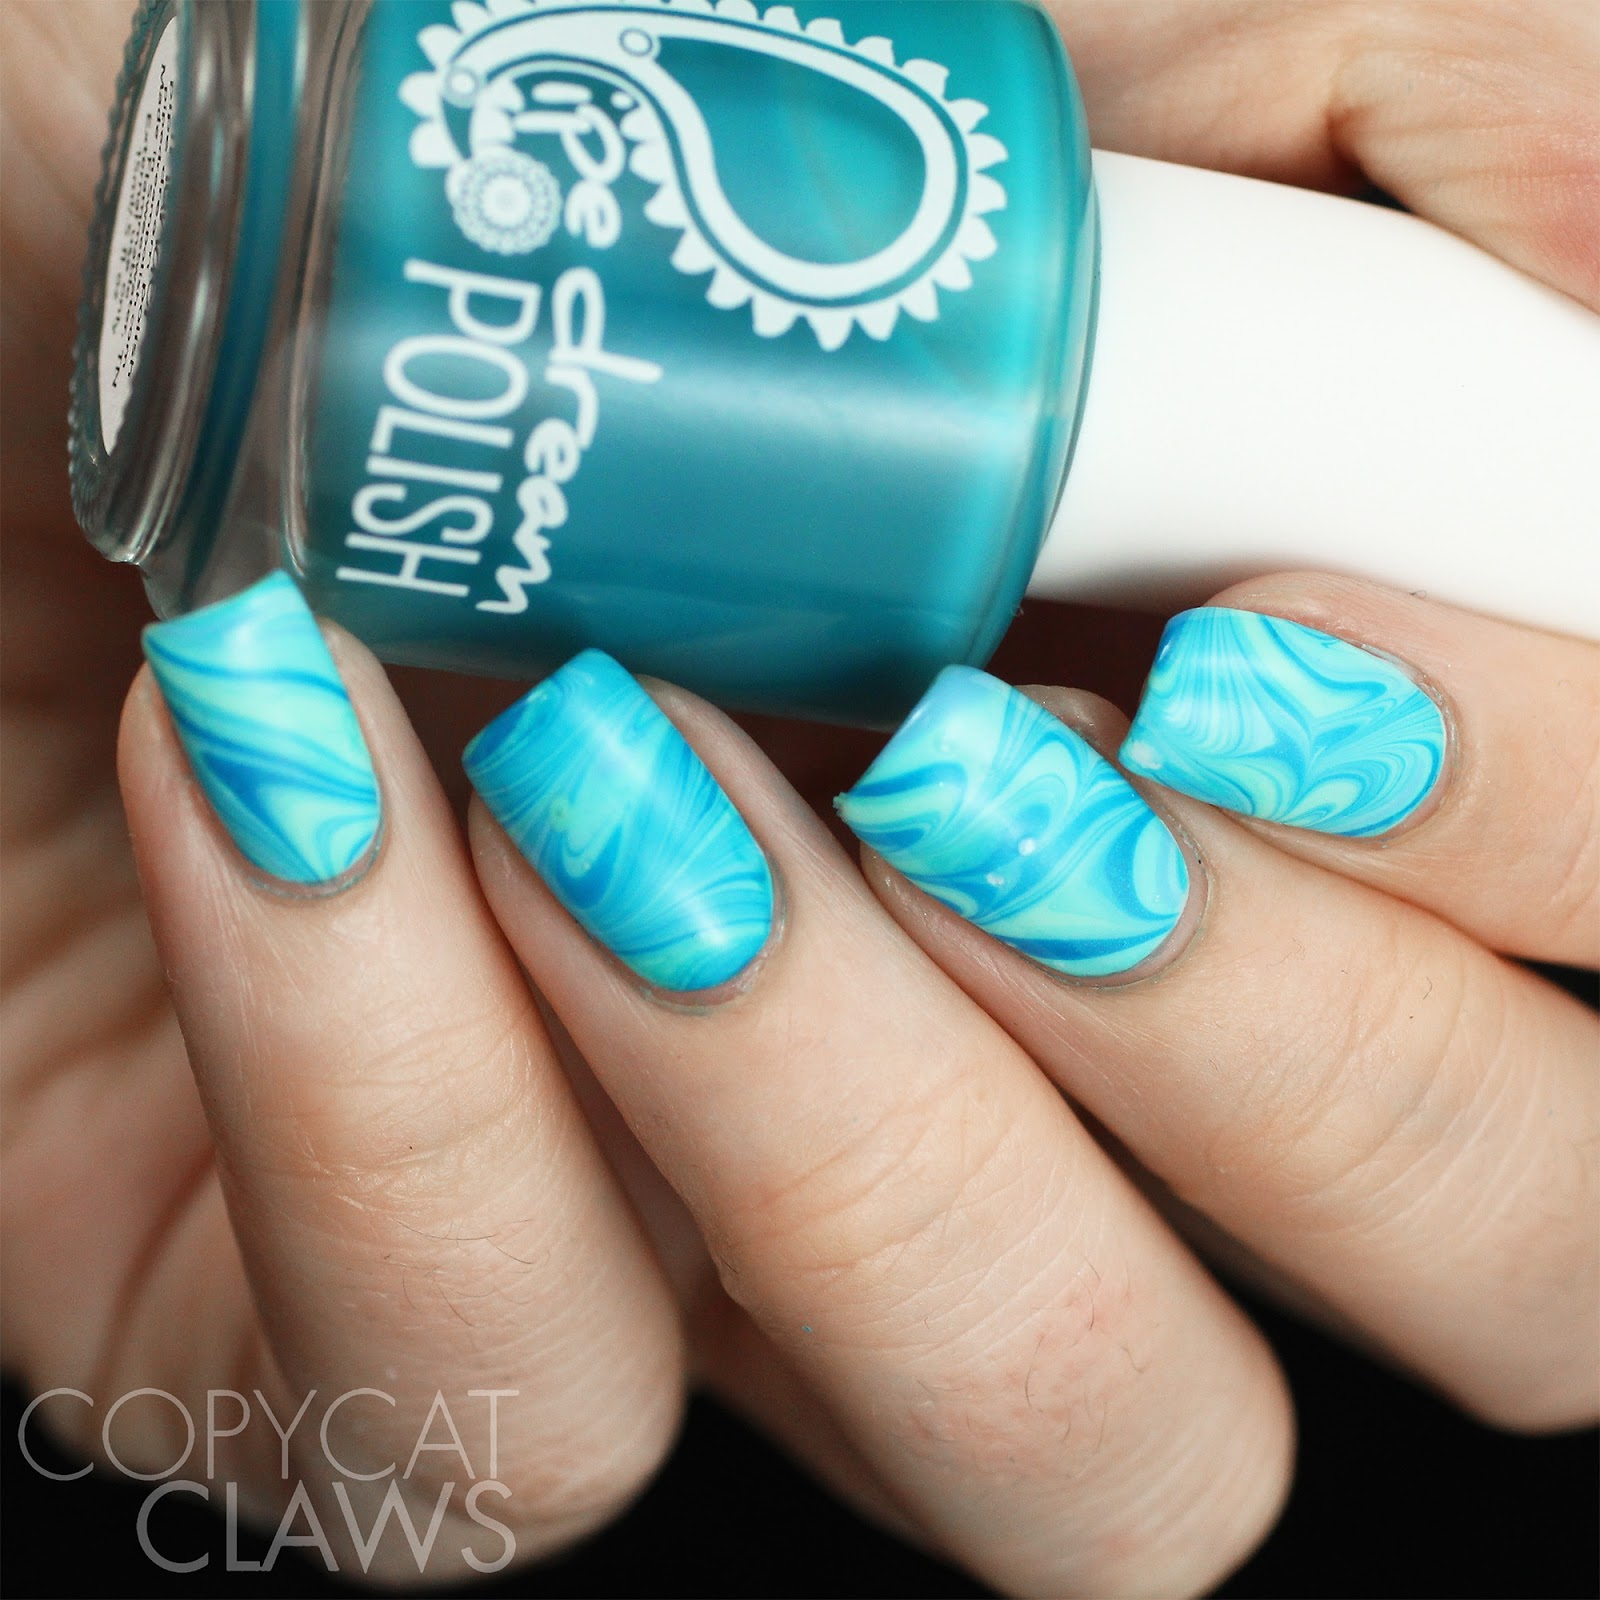 Copycat Claws Blue Color Block Nail Art: Copycat Claws: 26 Great Nail Art Ideas